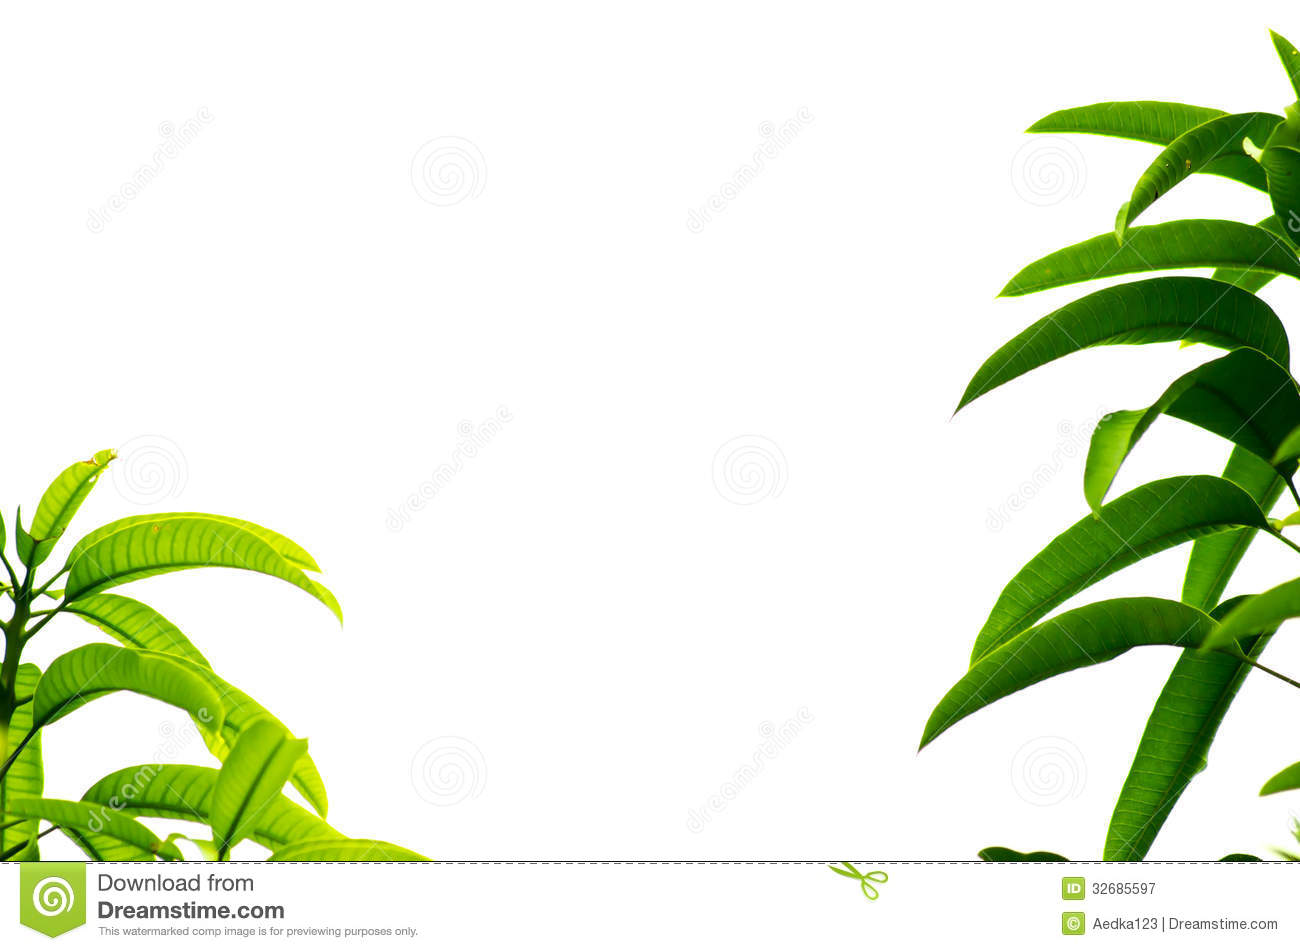 forest landscape vector IA